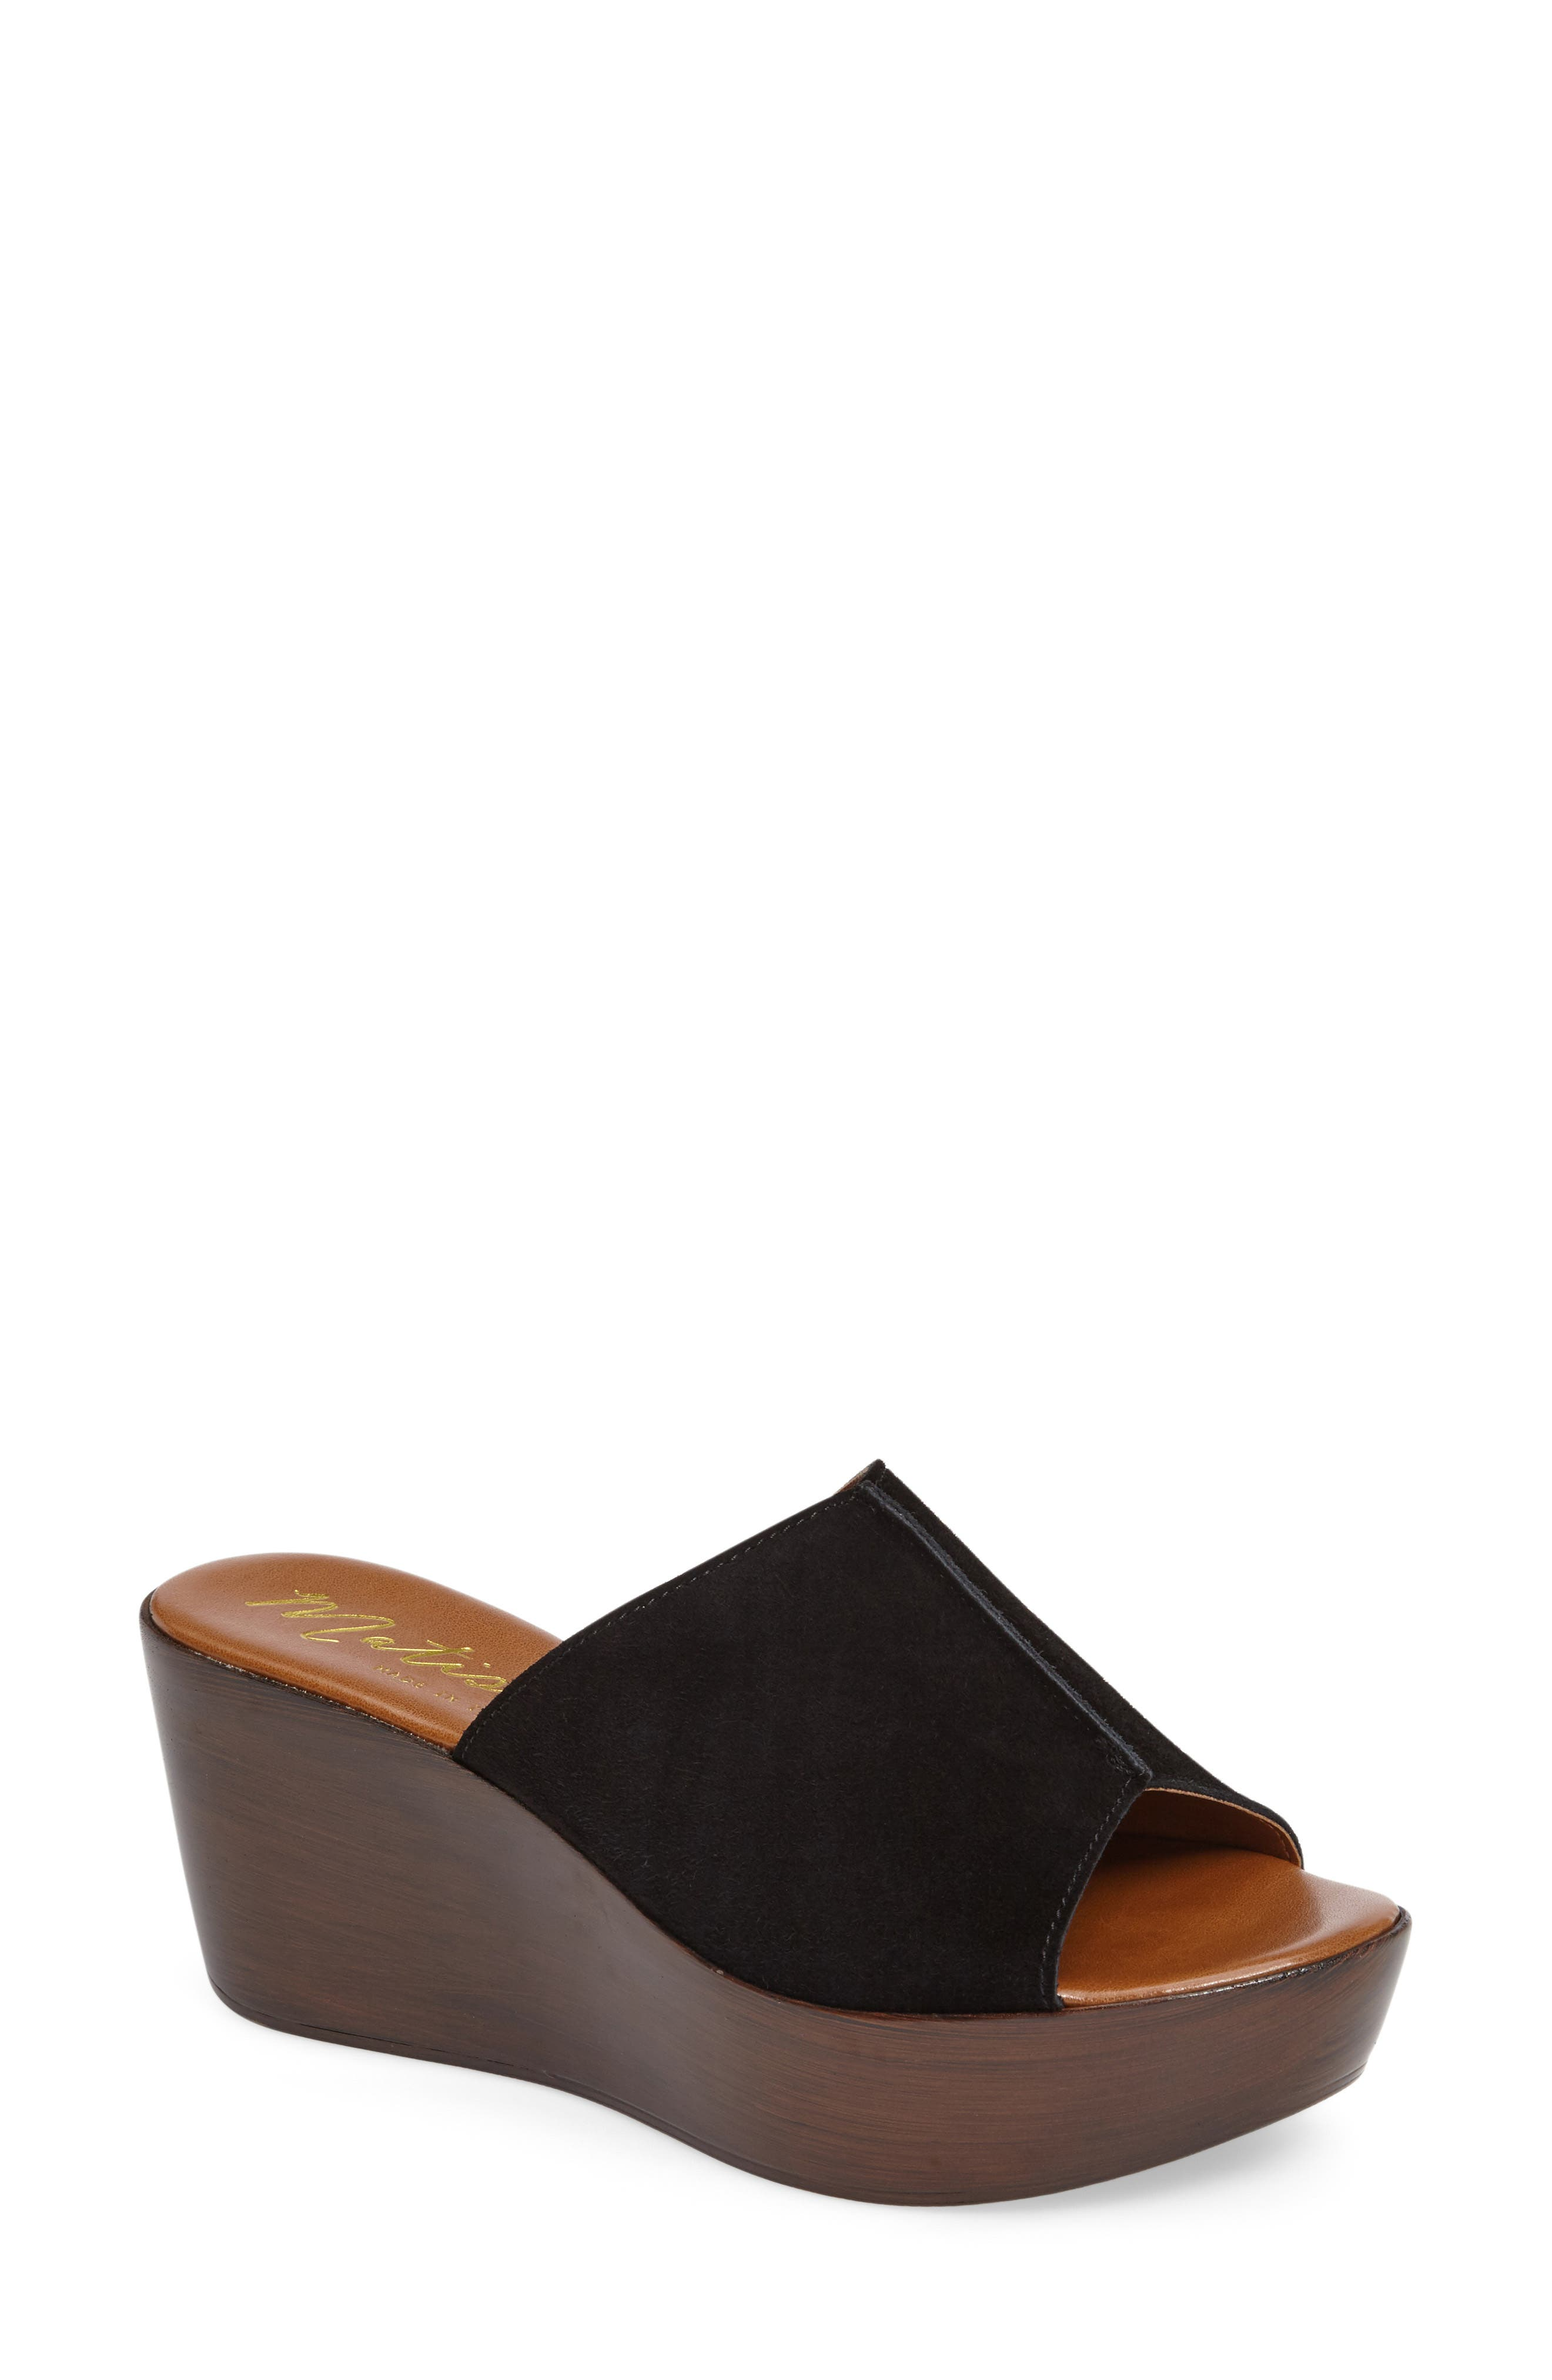 Platform Slide Sandal,                         Main,                         color,